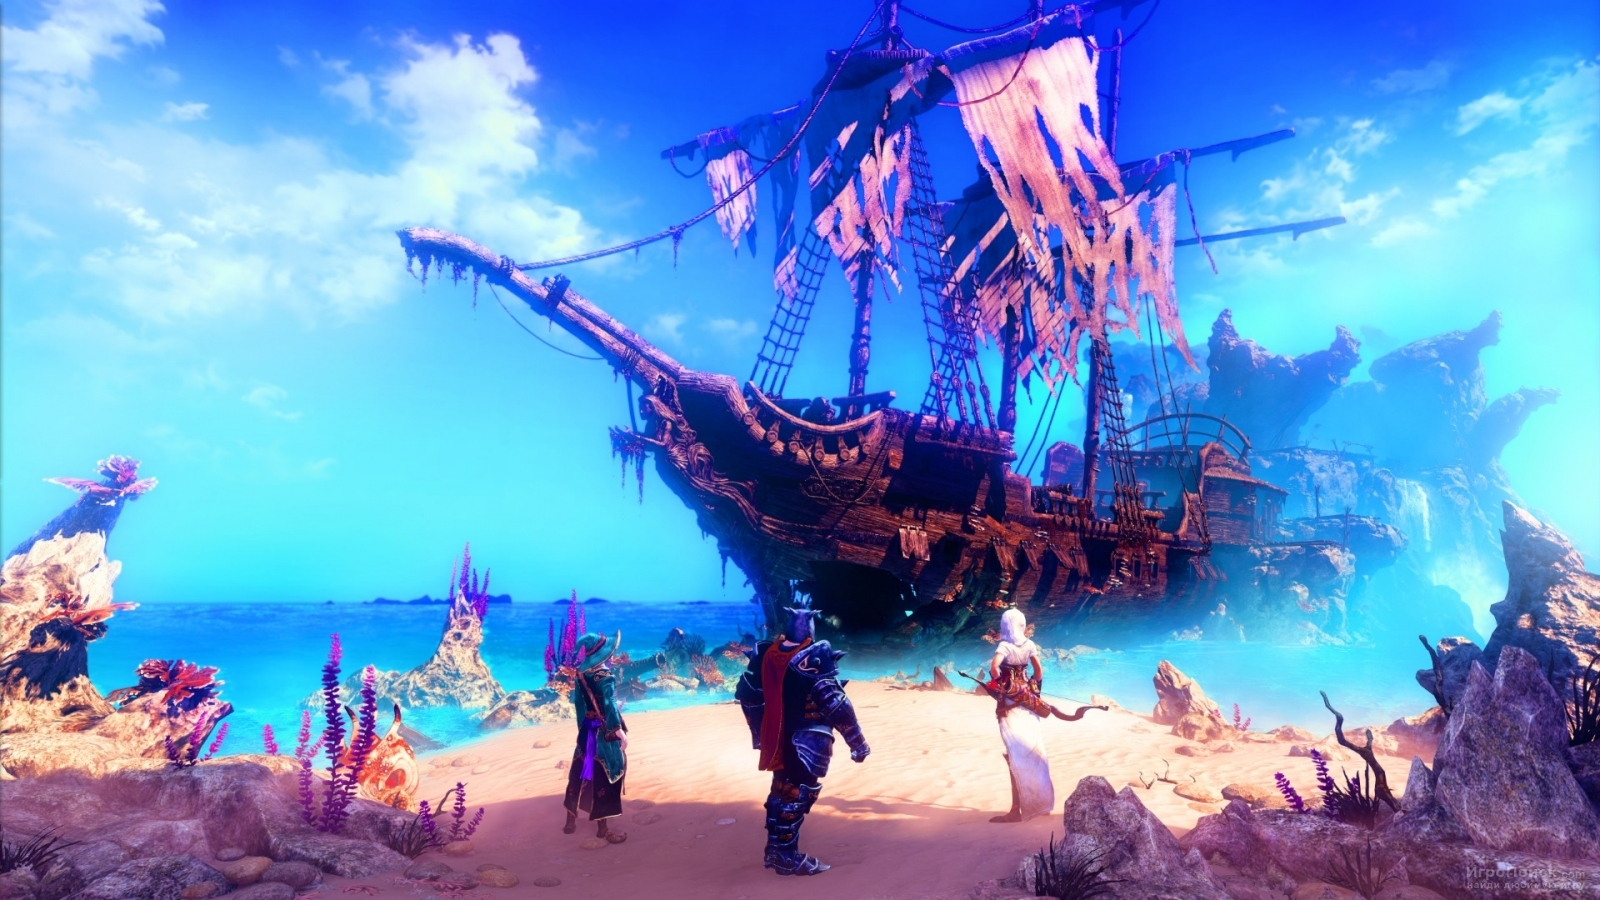 Скриншот к игре Trine 3: The Artifacts of Power